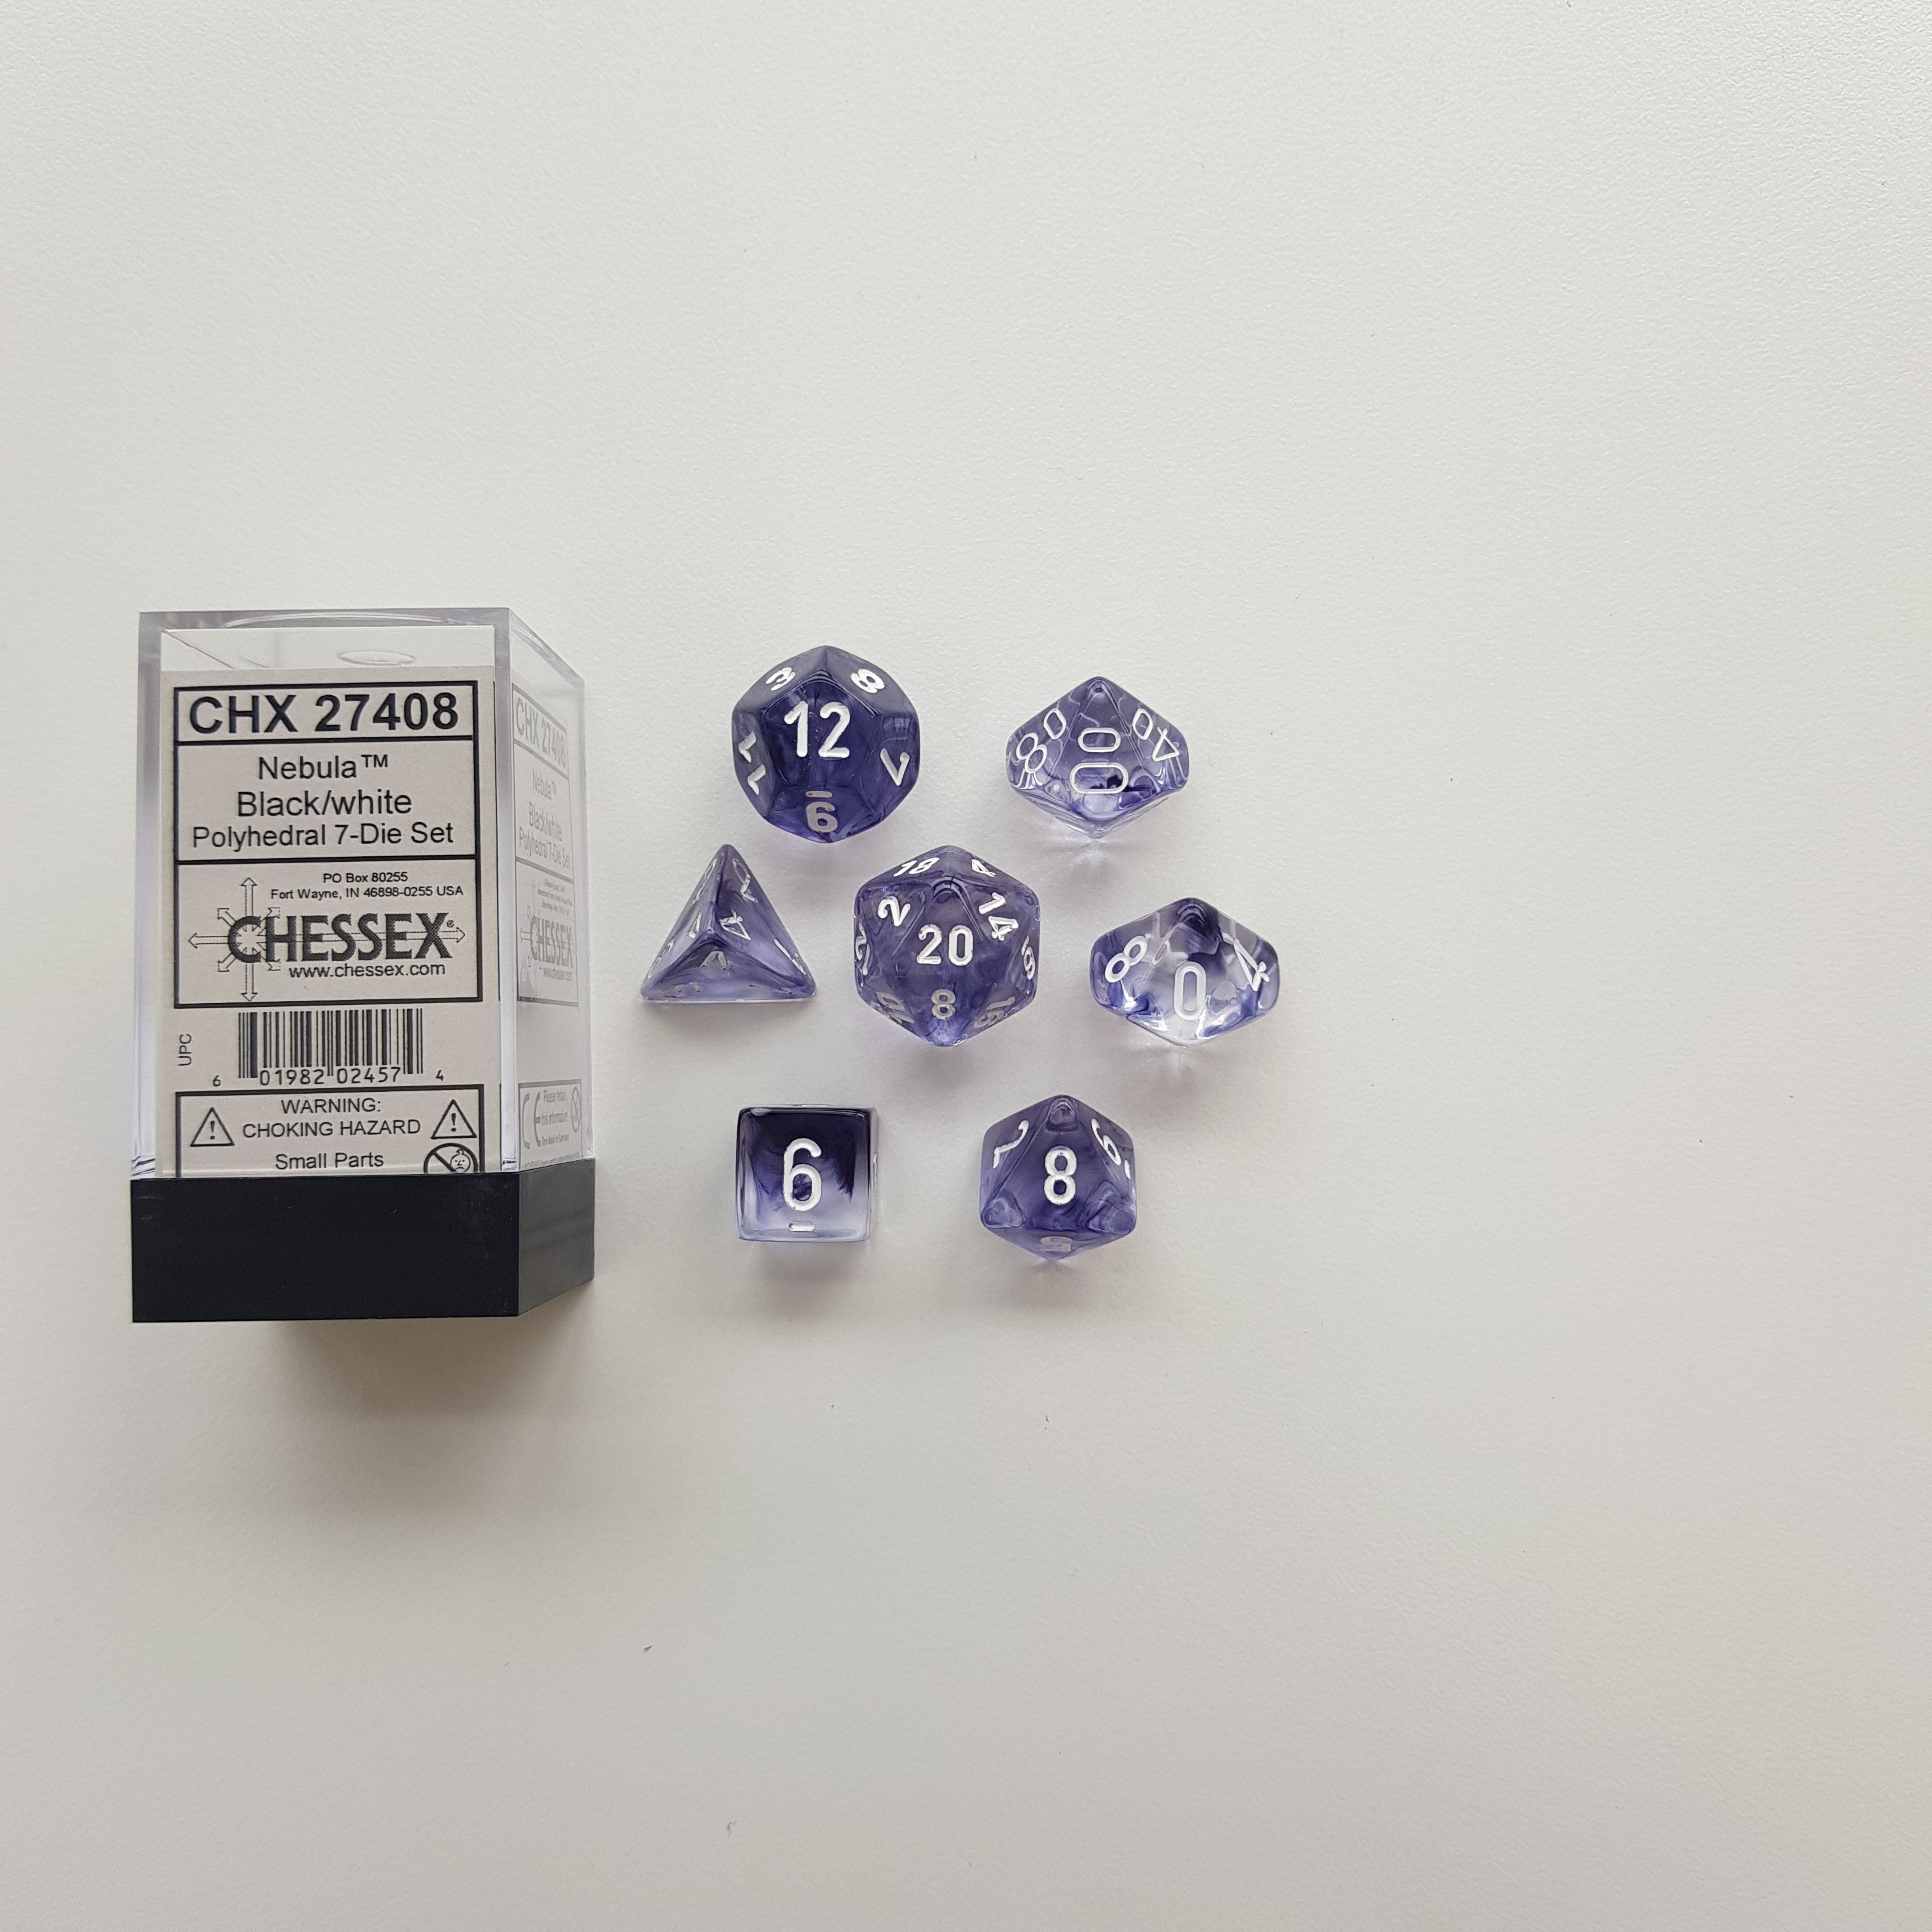 Chessex Black/White Nebula Polyhedral Dice Set (CHX27408) | Sunny Pair'O'Dice